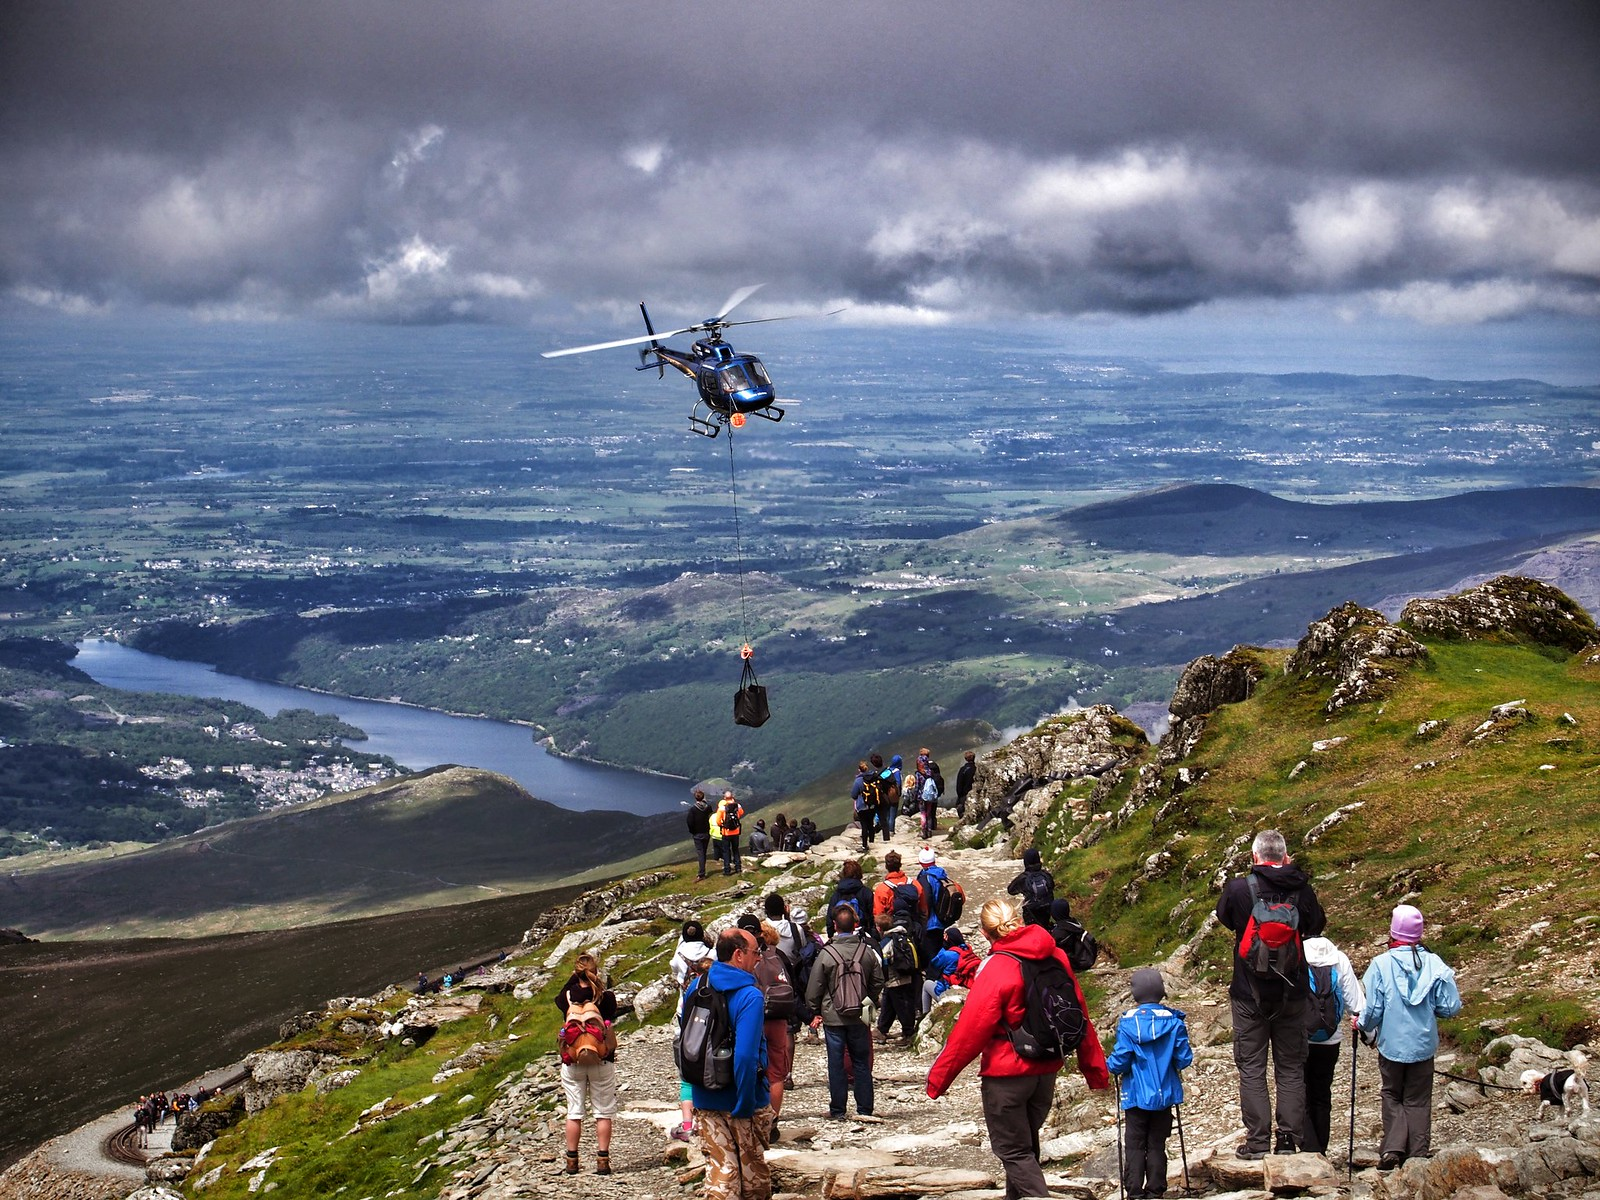 Helicopter at the top of Snowdon